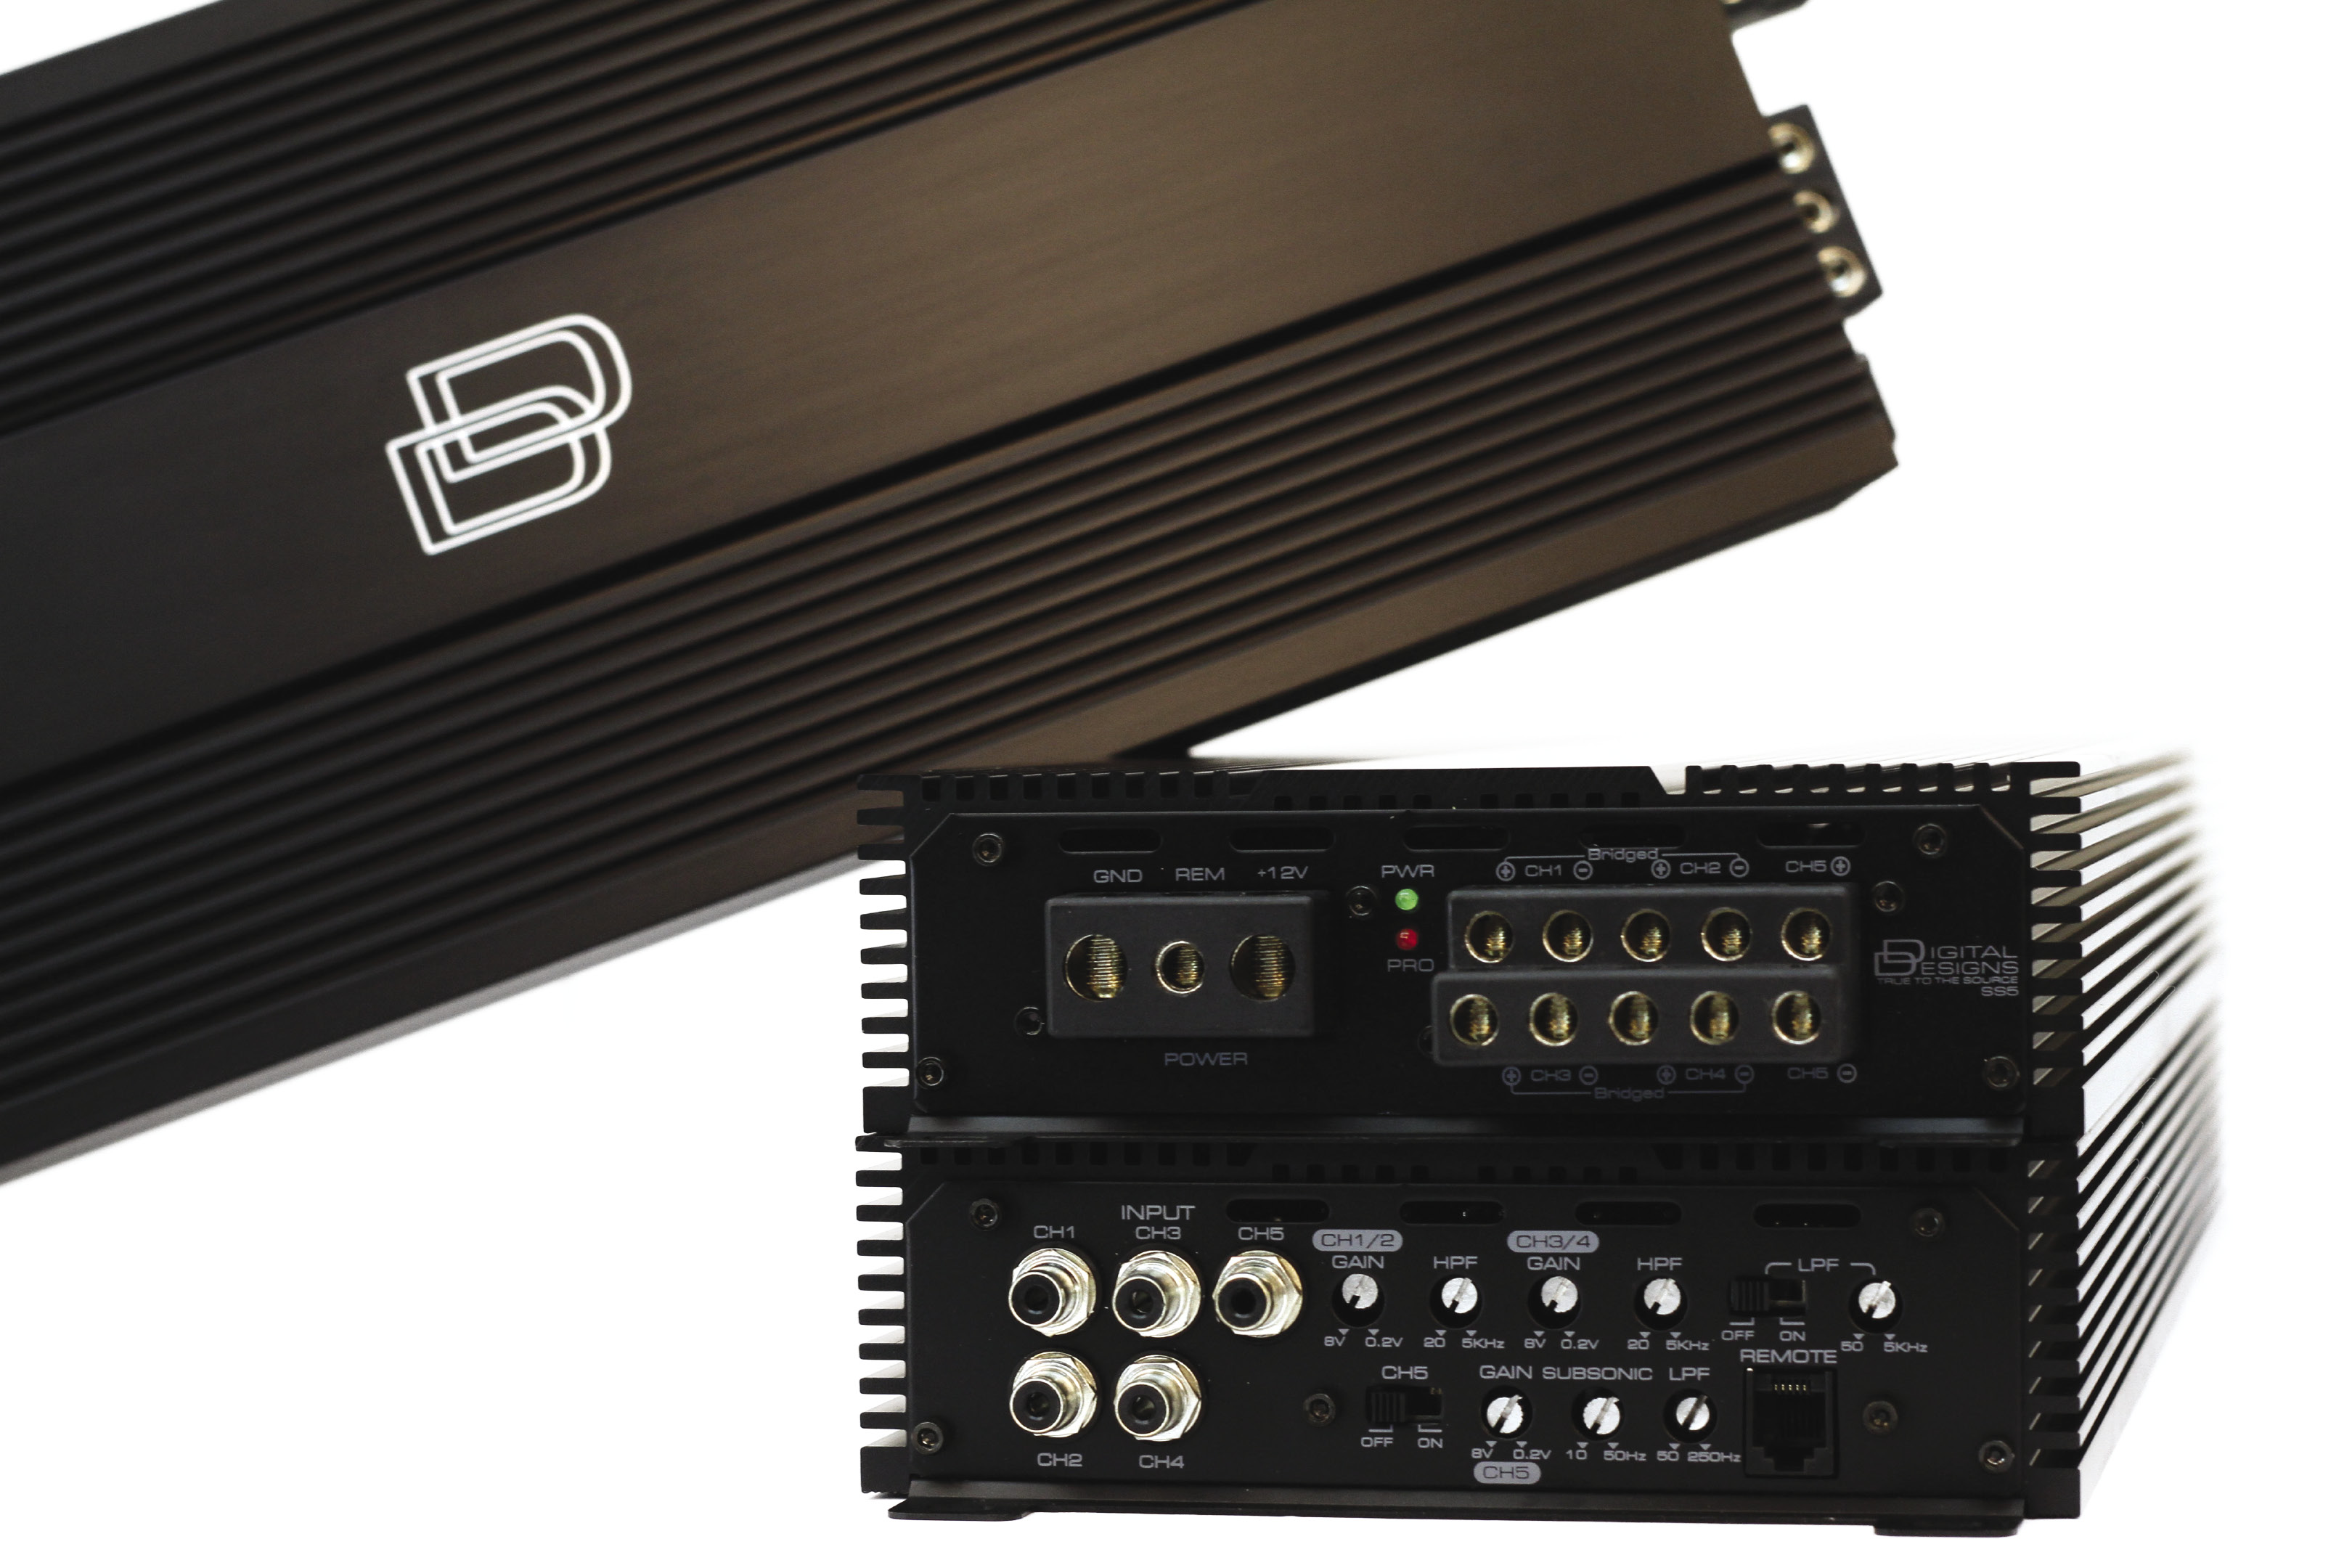 Pasmag Performance Auto And Sound Amplifiers Buyers Guide Mb Quart Premium Series Digital Car Audio System July 2012 Dd